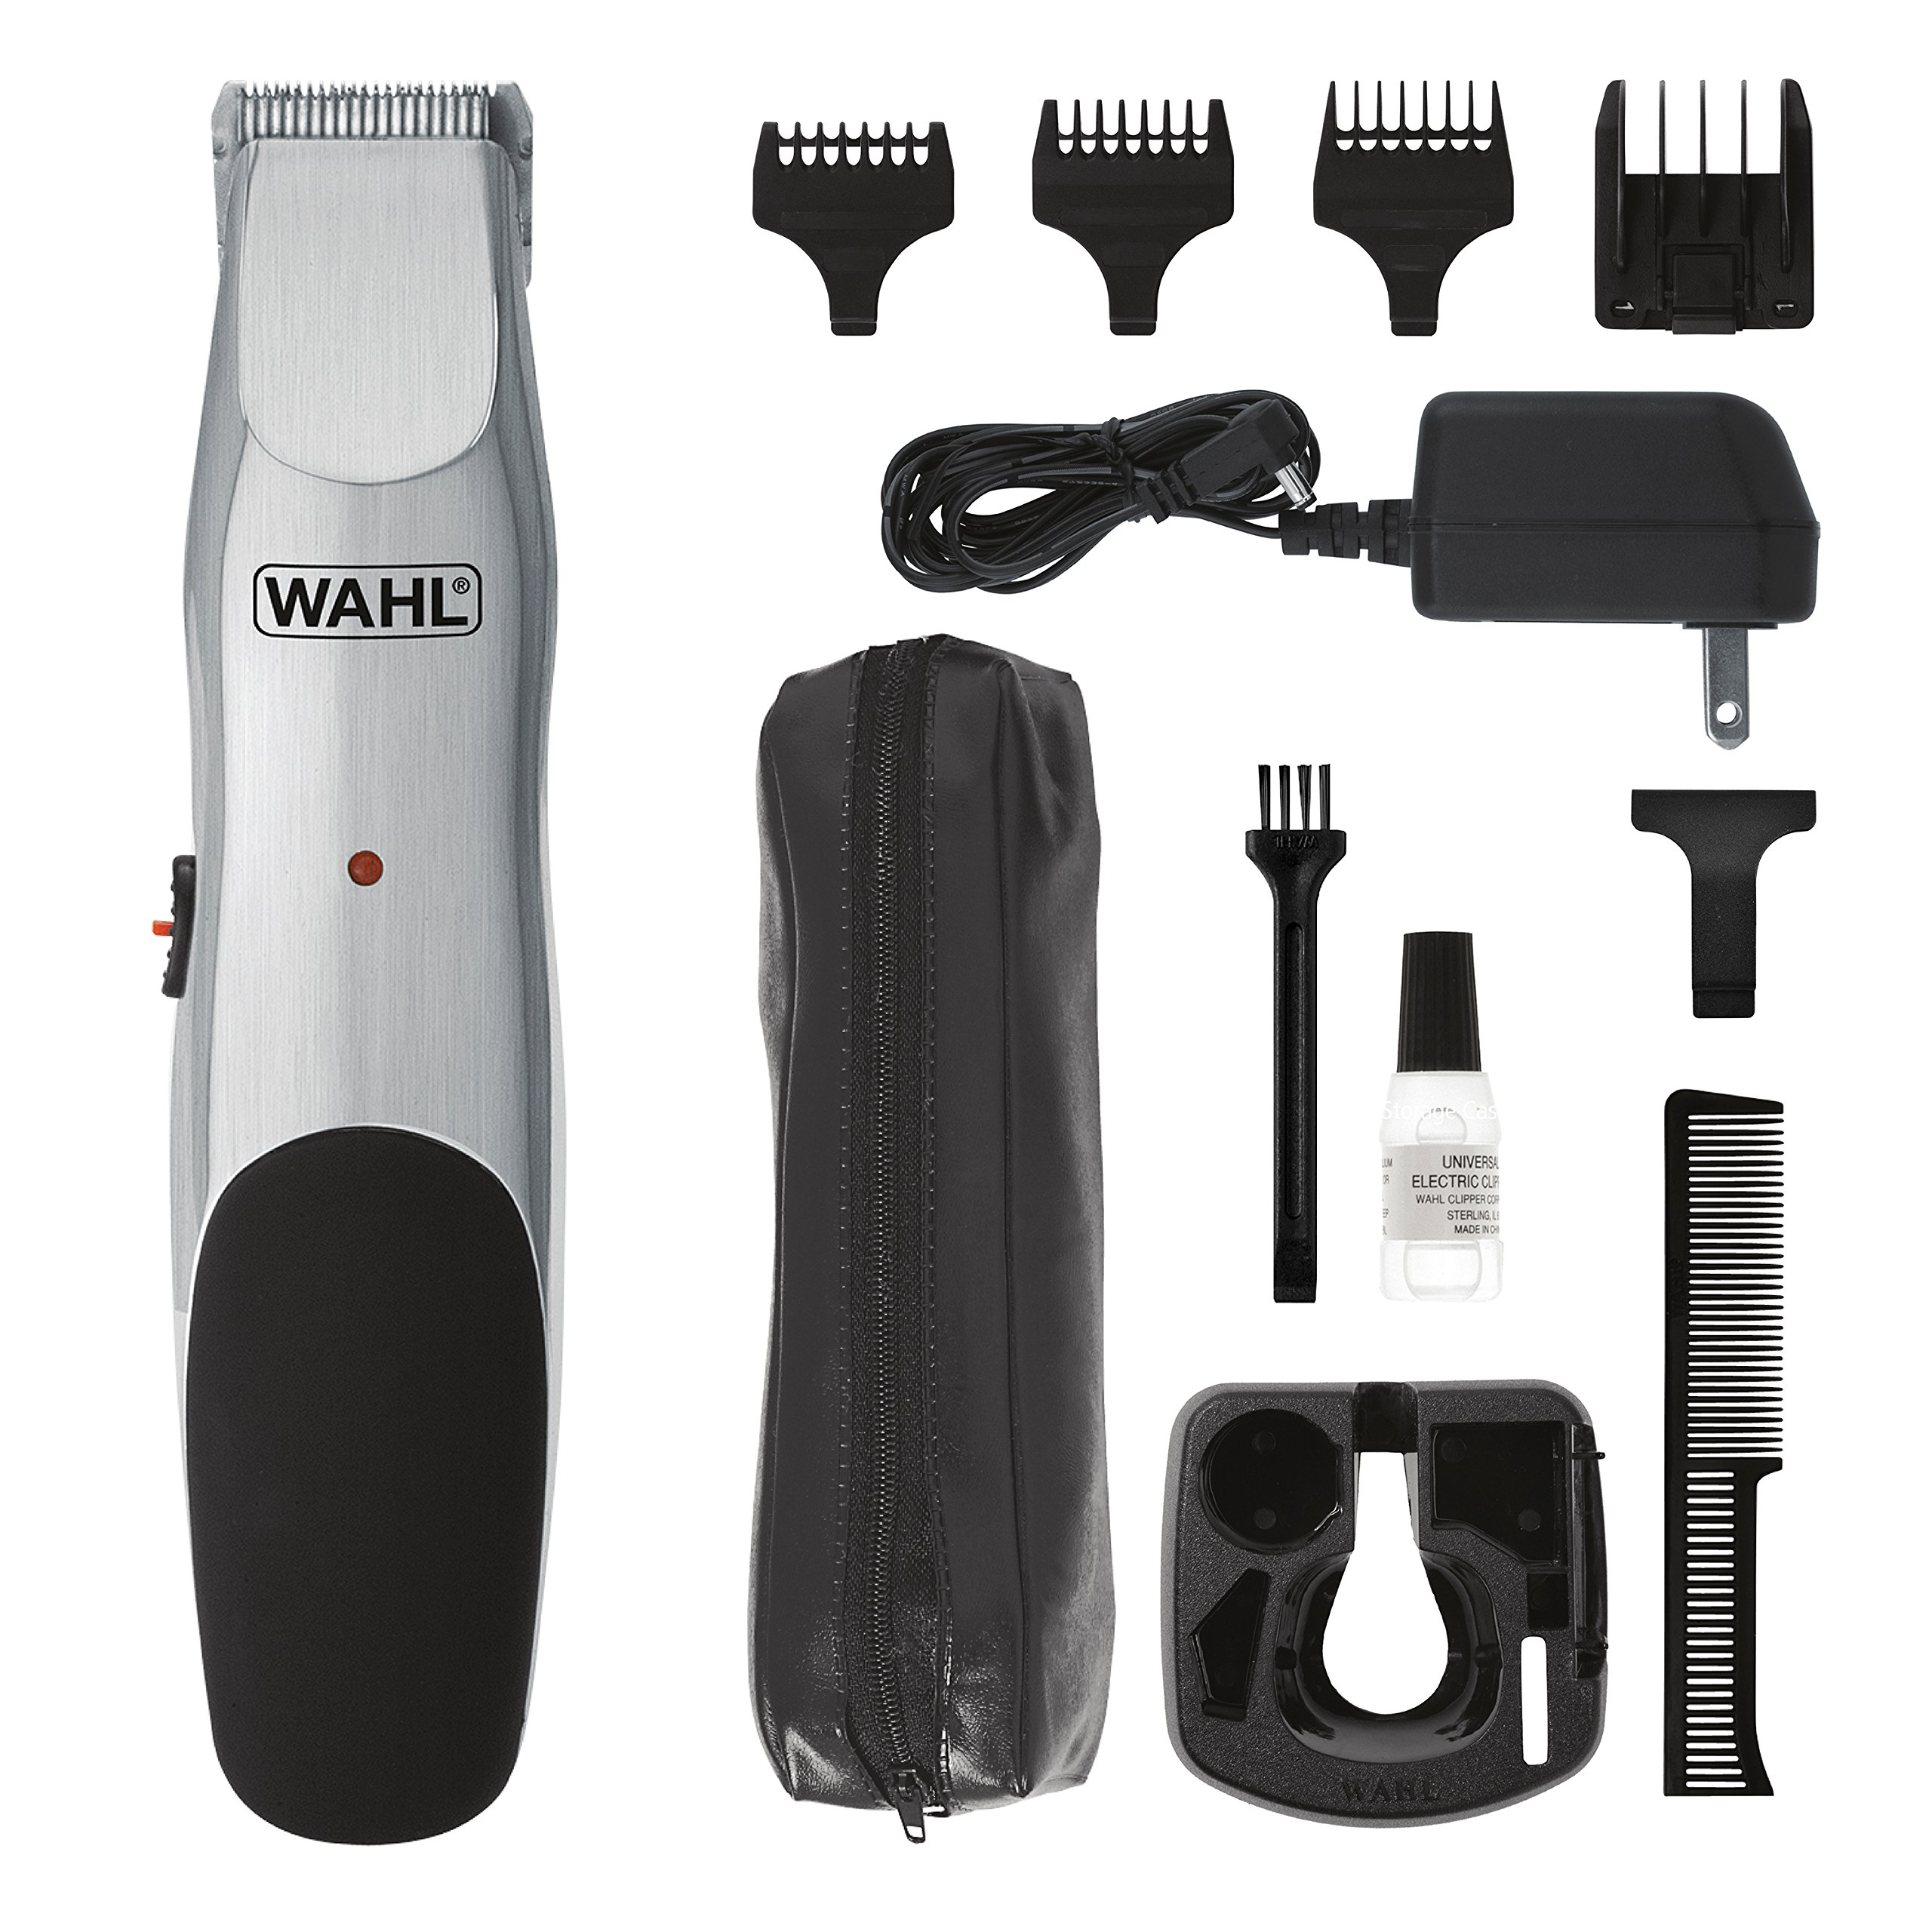 Wahl Clipper Groomsman Cord/Cordless Beard Trimmers for men, Hair Clippers and Shavers, Rechargeable men's Grooming Kit, Gifts for Husband Boyfriend, by the Brand used by Professionals # 9918-6171